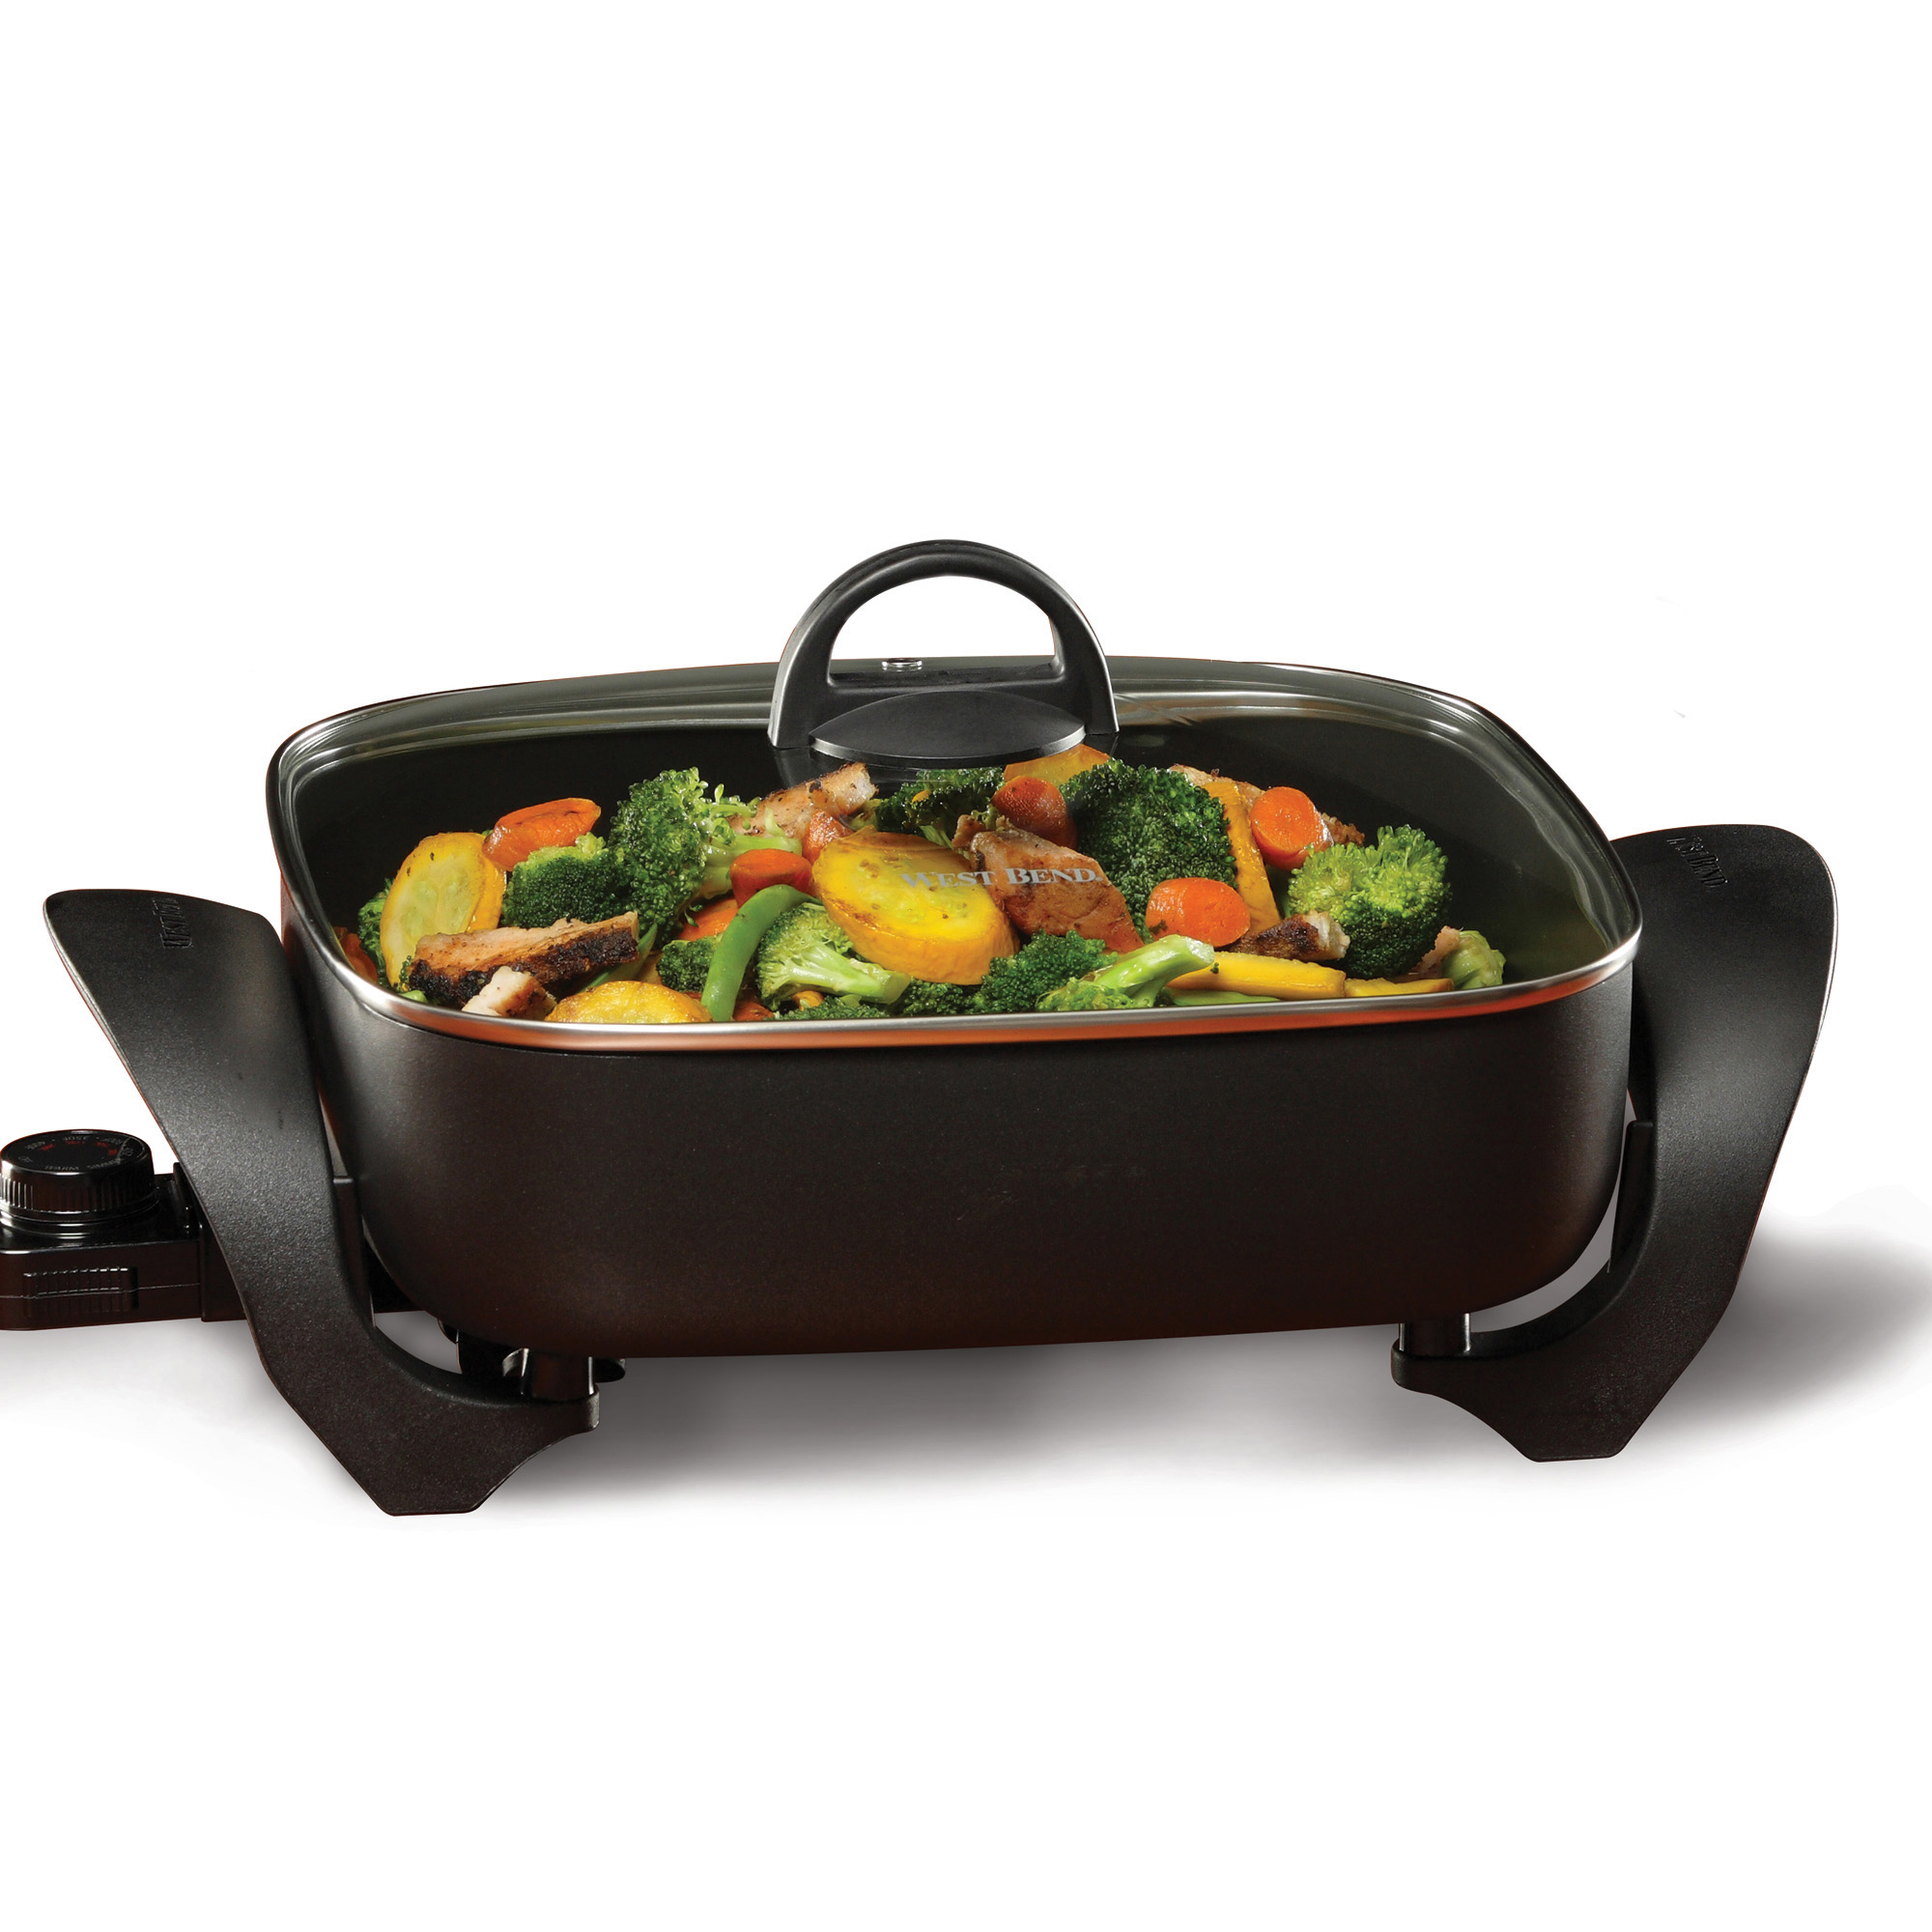 West Bend 72212 Extra-Deep 12-Inch Square Skillet